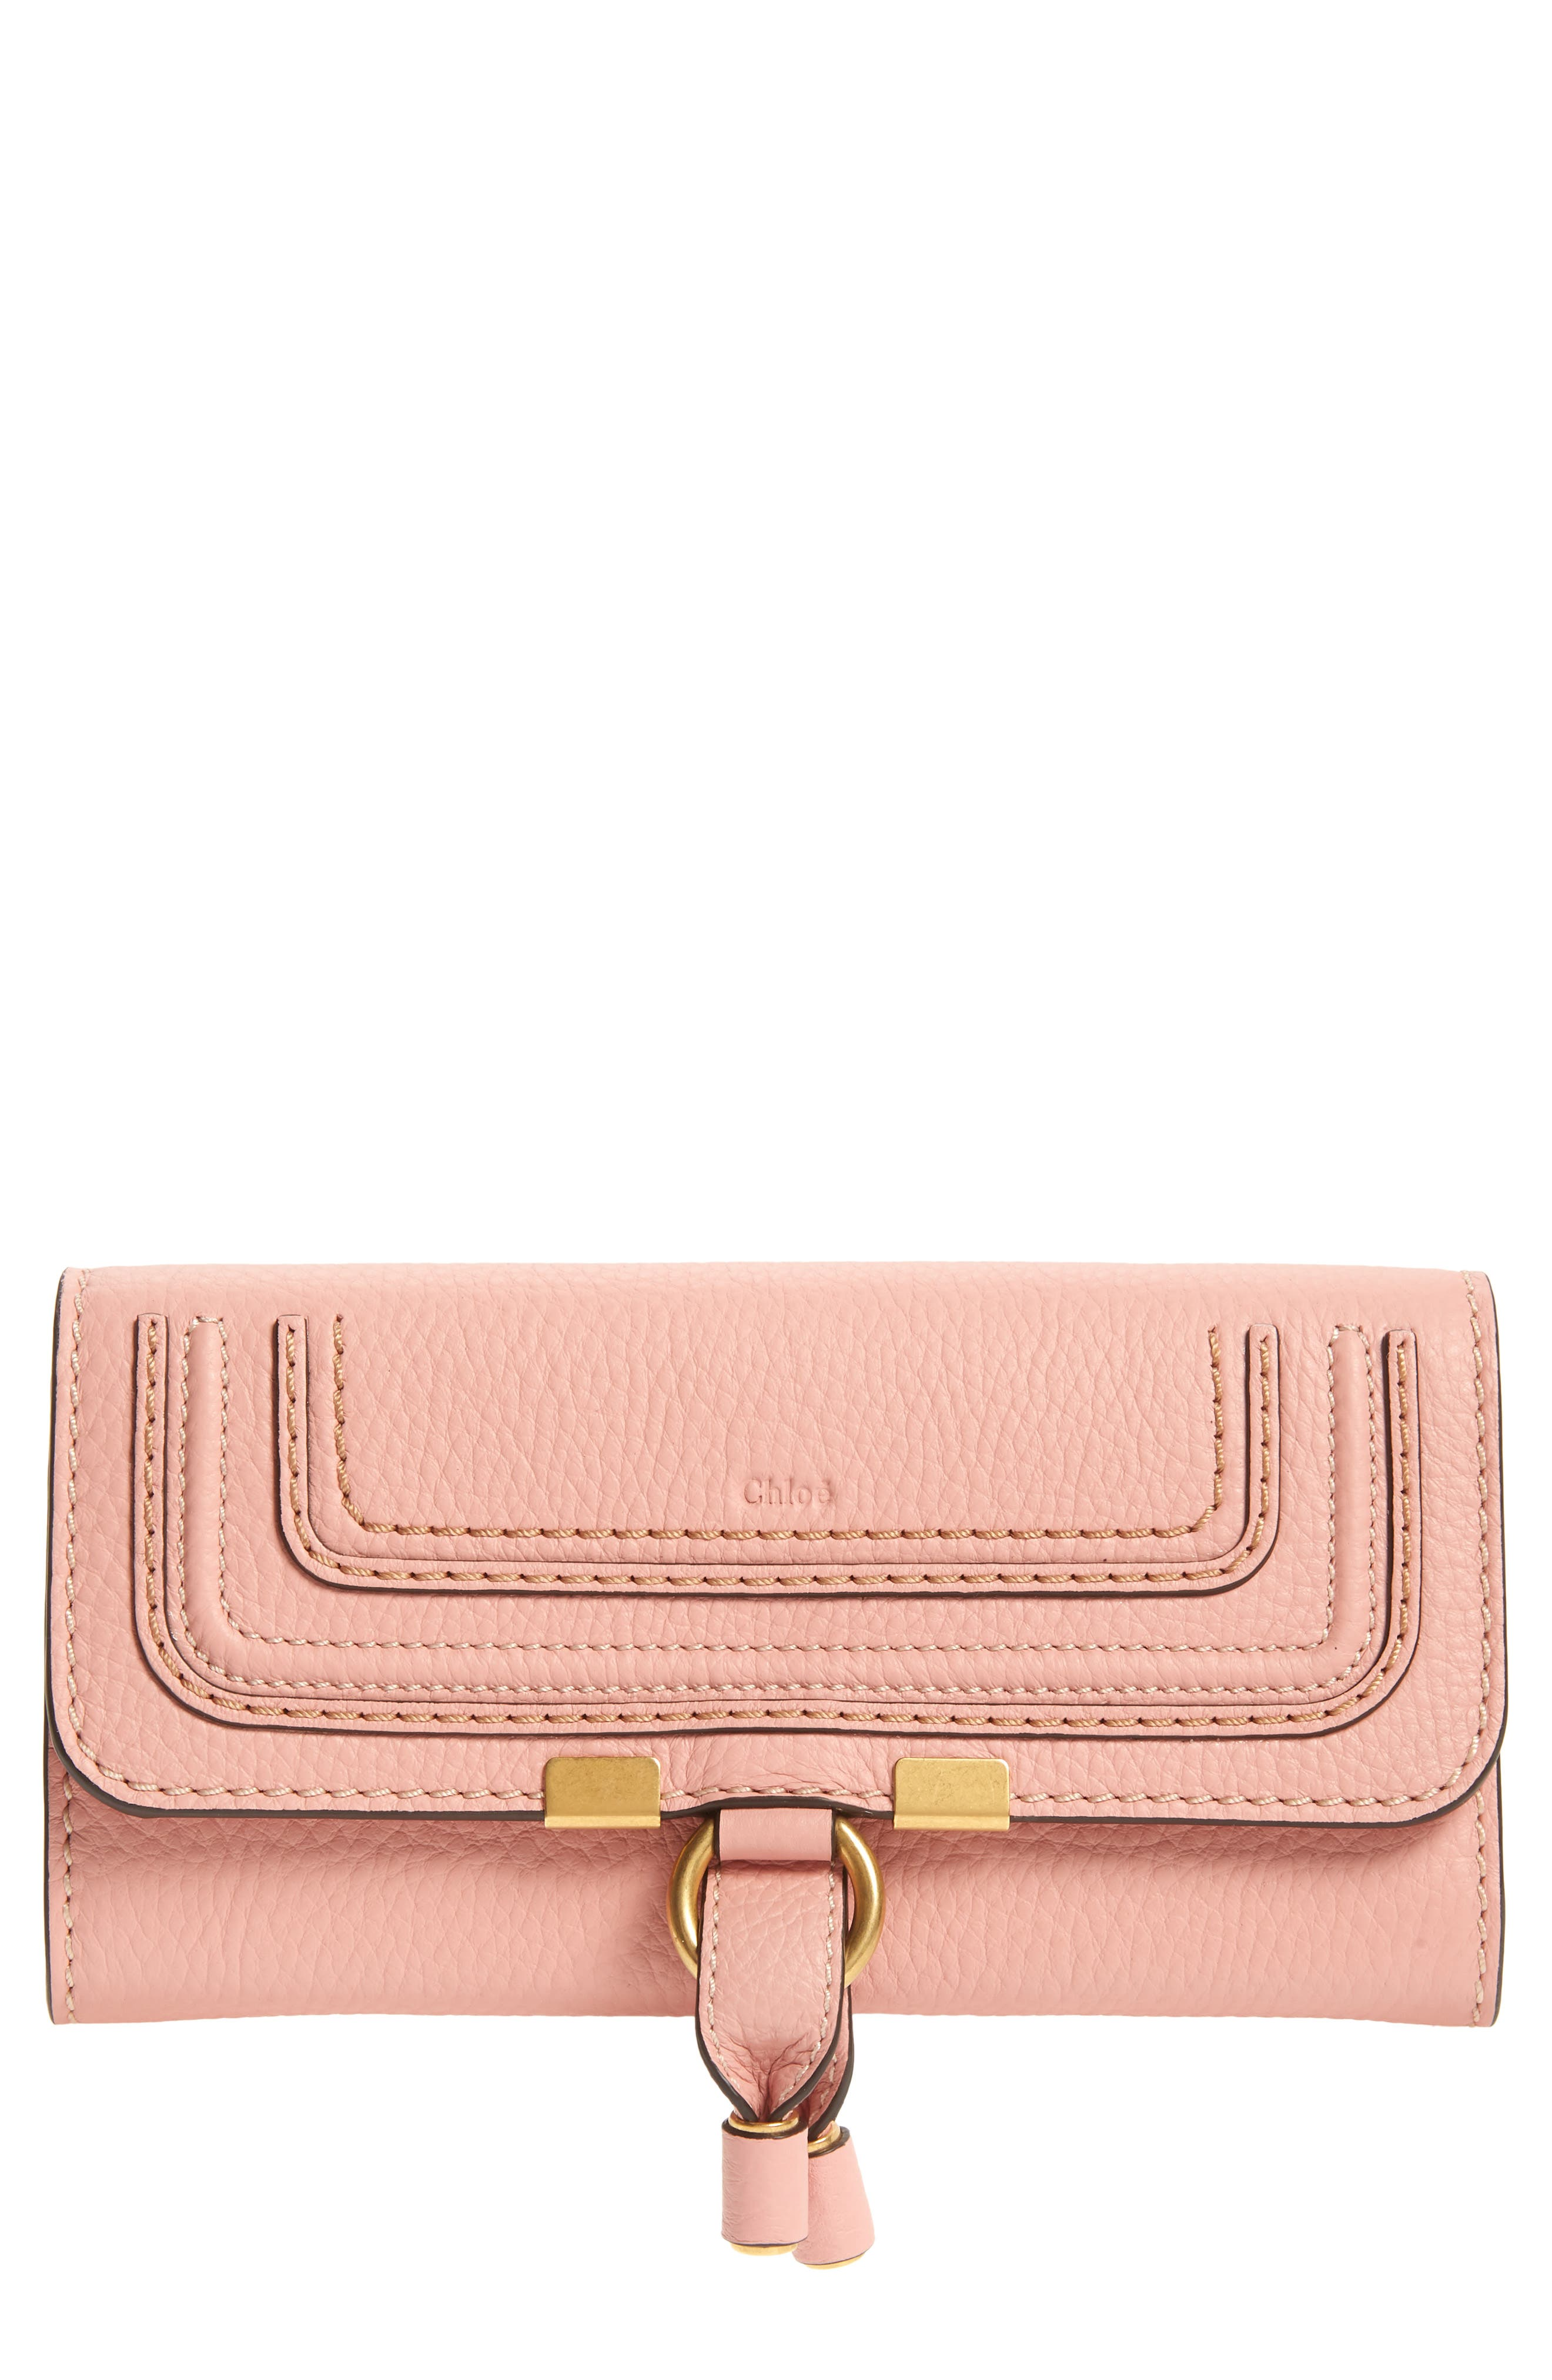 Chloé Marcie Leather Flap Wallet | Nordstrom